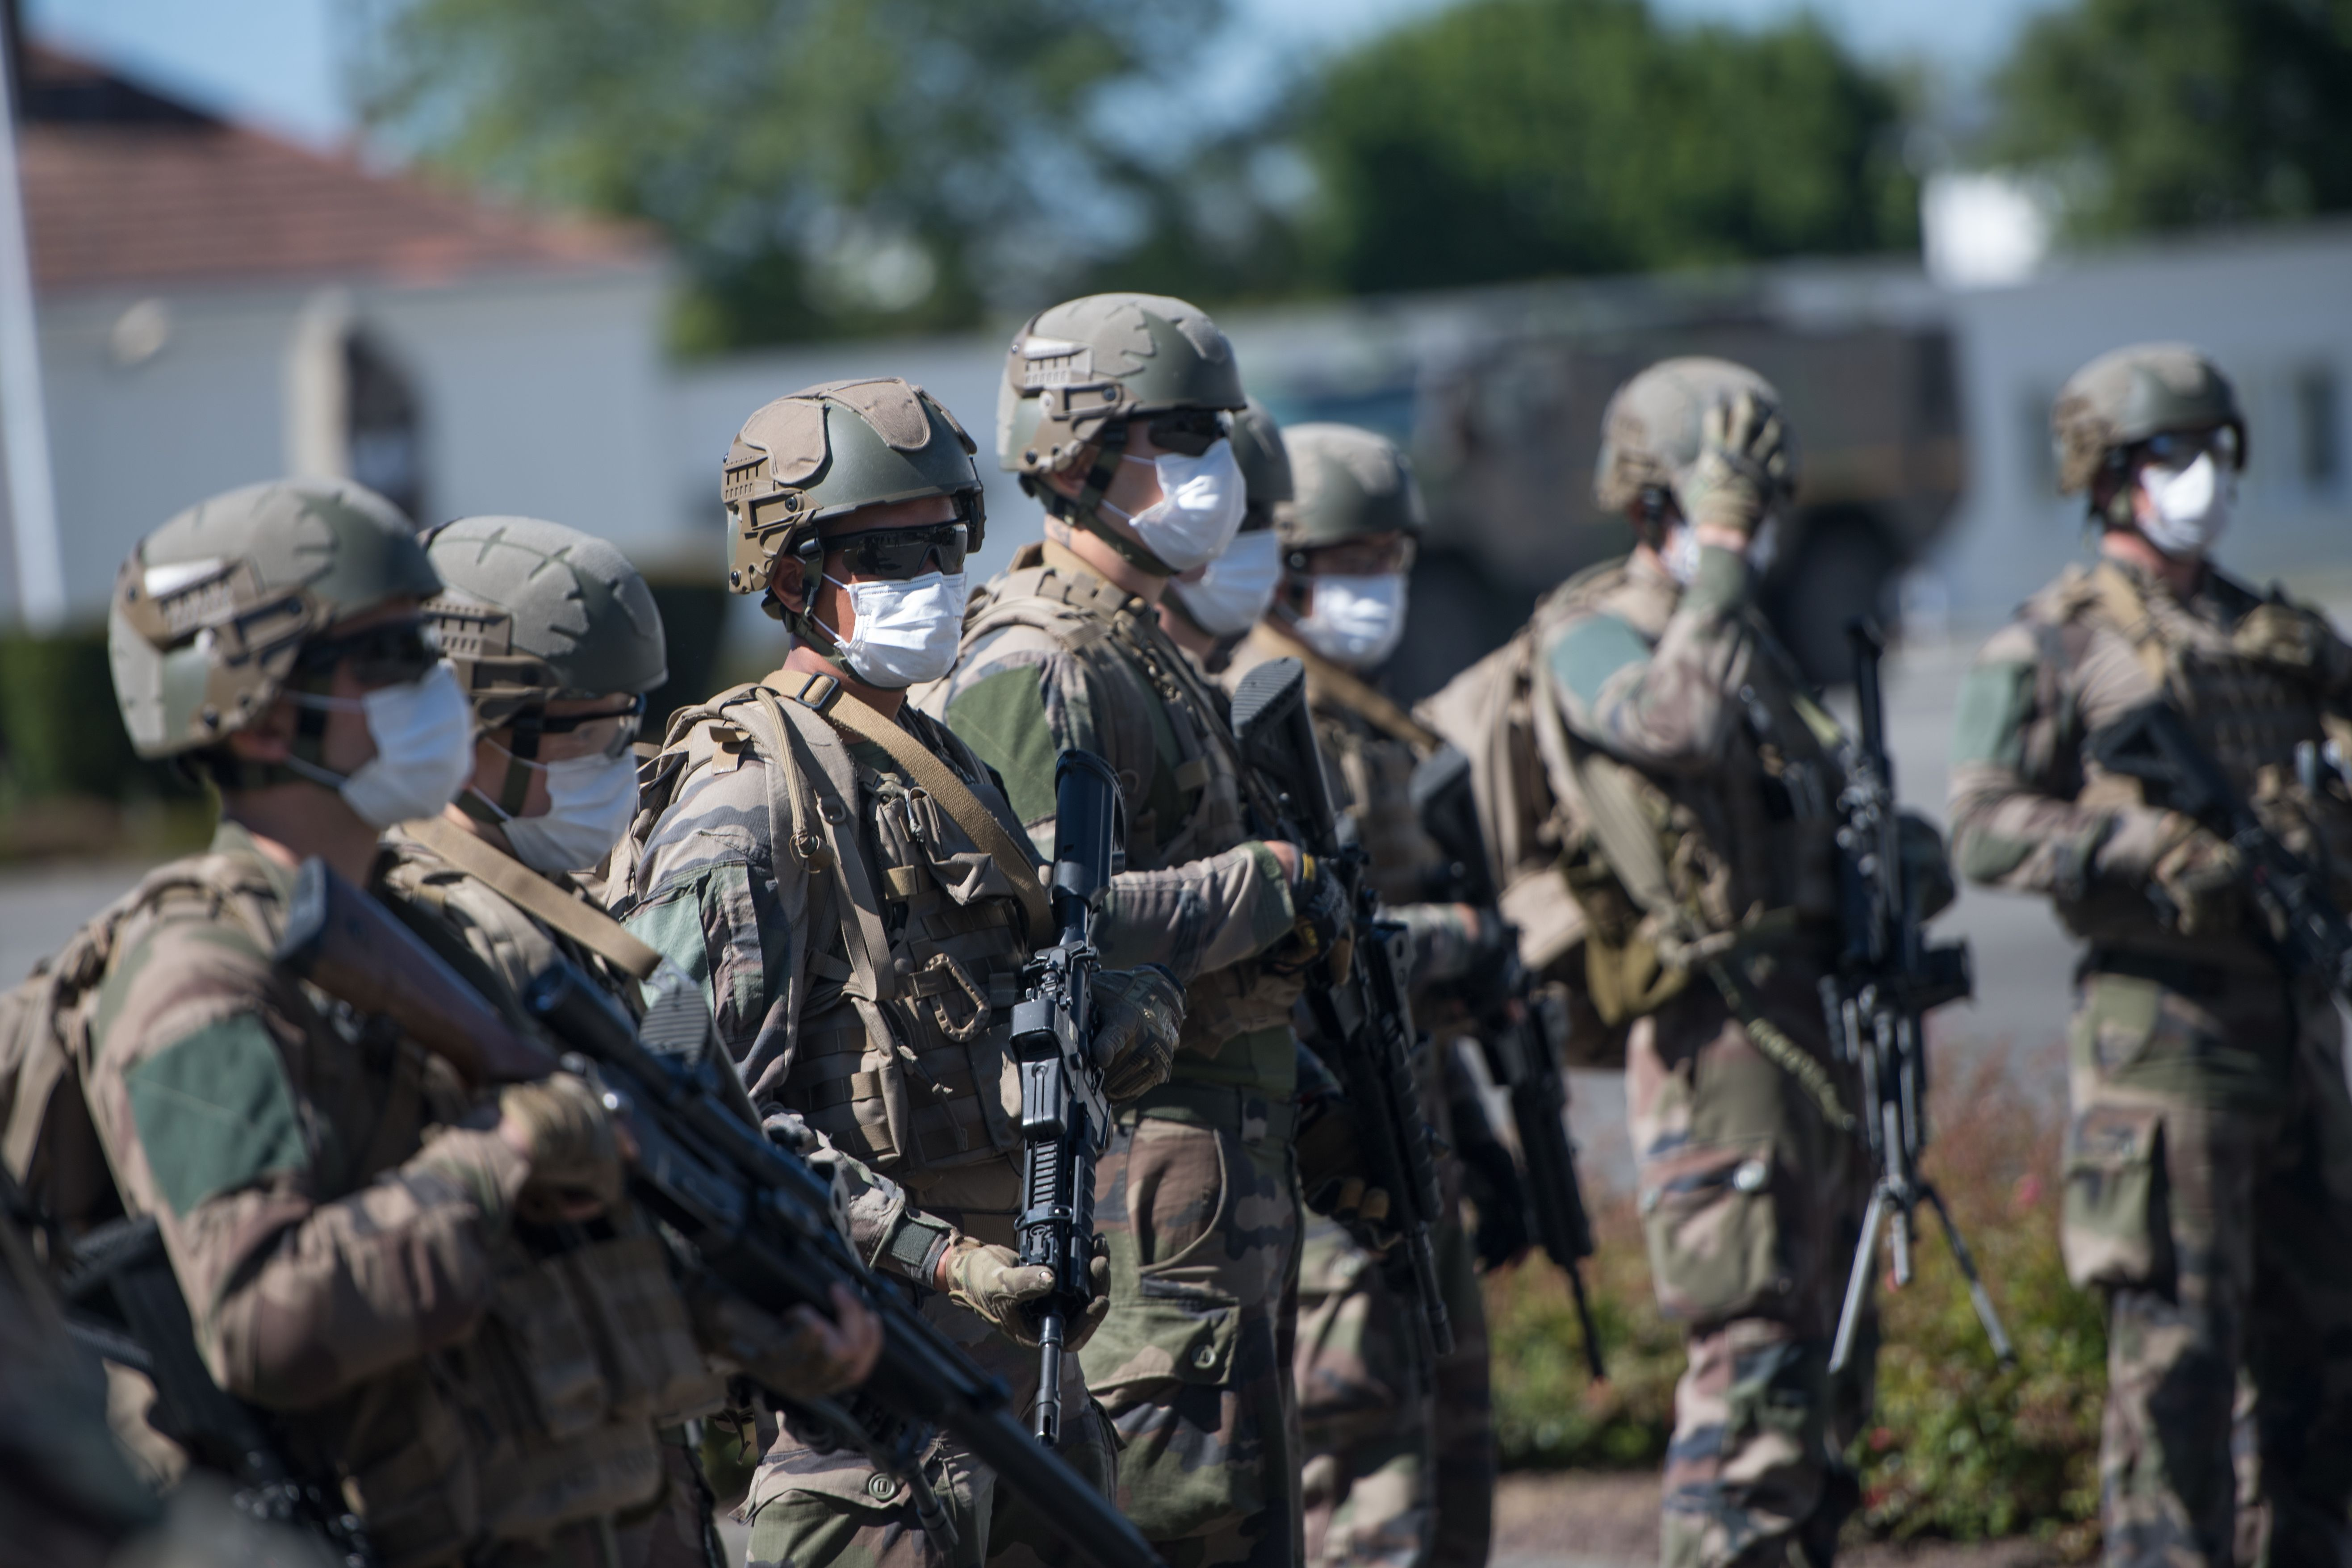 Soldiers of the 3d RIMA listen to the French armed forces minister in Vannes, western France, on May 18, 2020, after France eased lockdown measures to curb the spread of the COVID-19 pandemic. (Loic Venance/AFP via Getty Images)